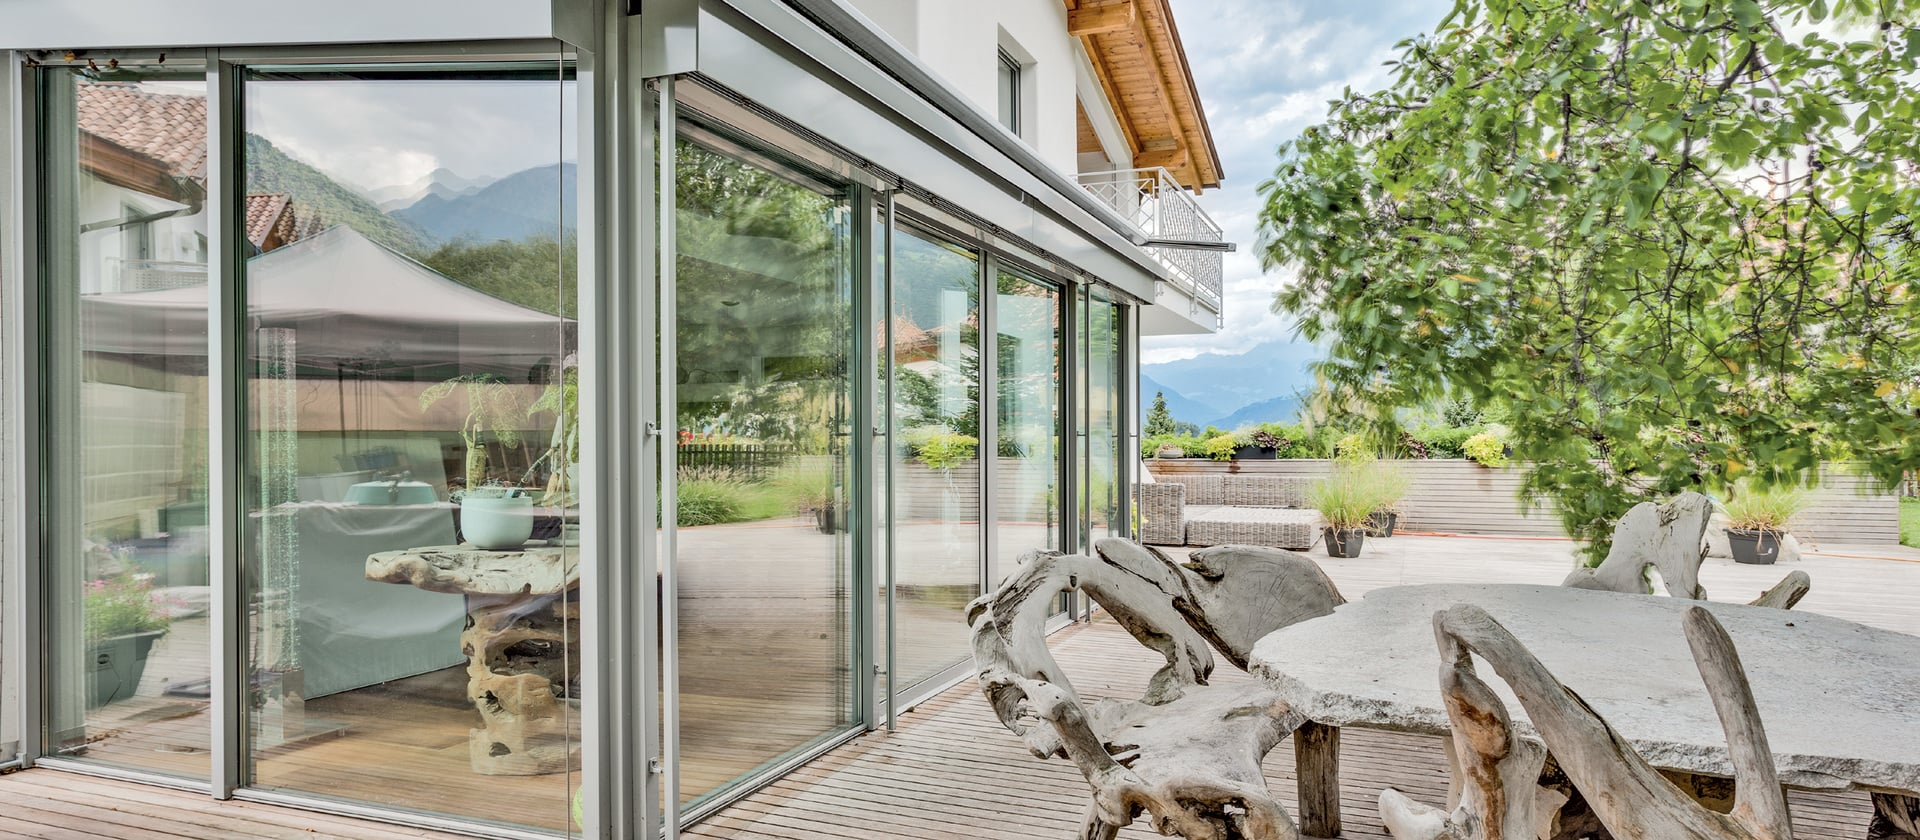 House in the Vinschgau Valley